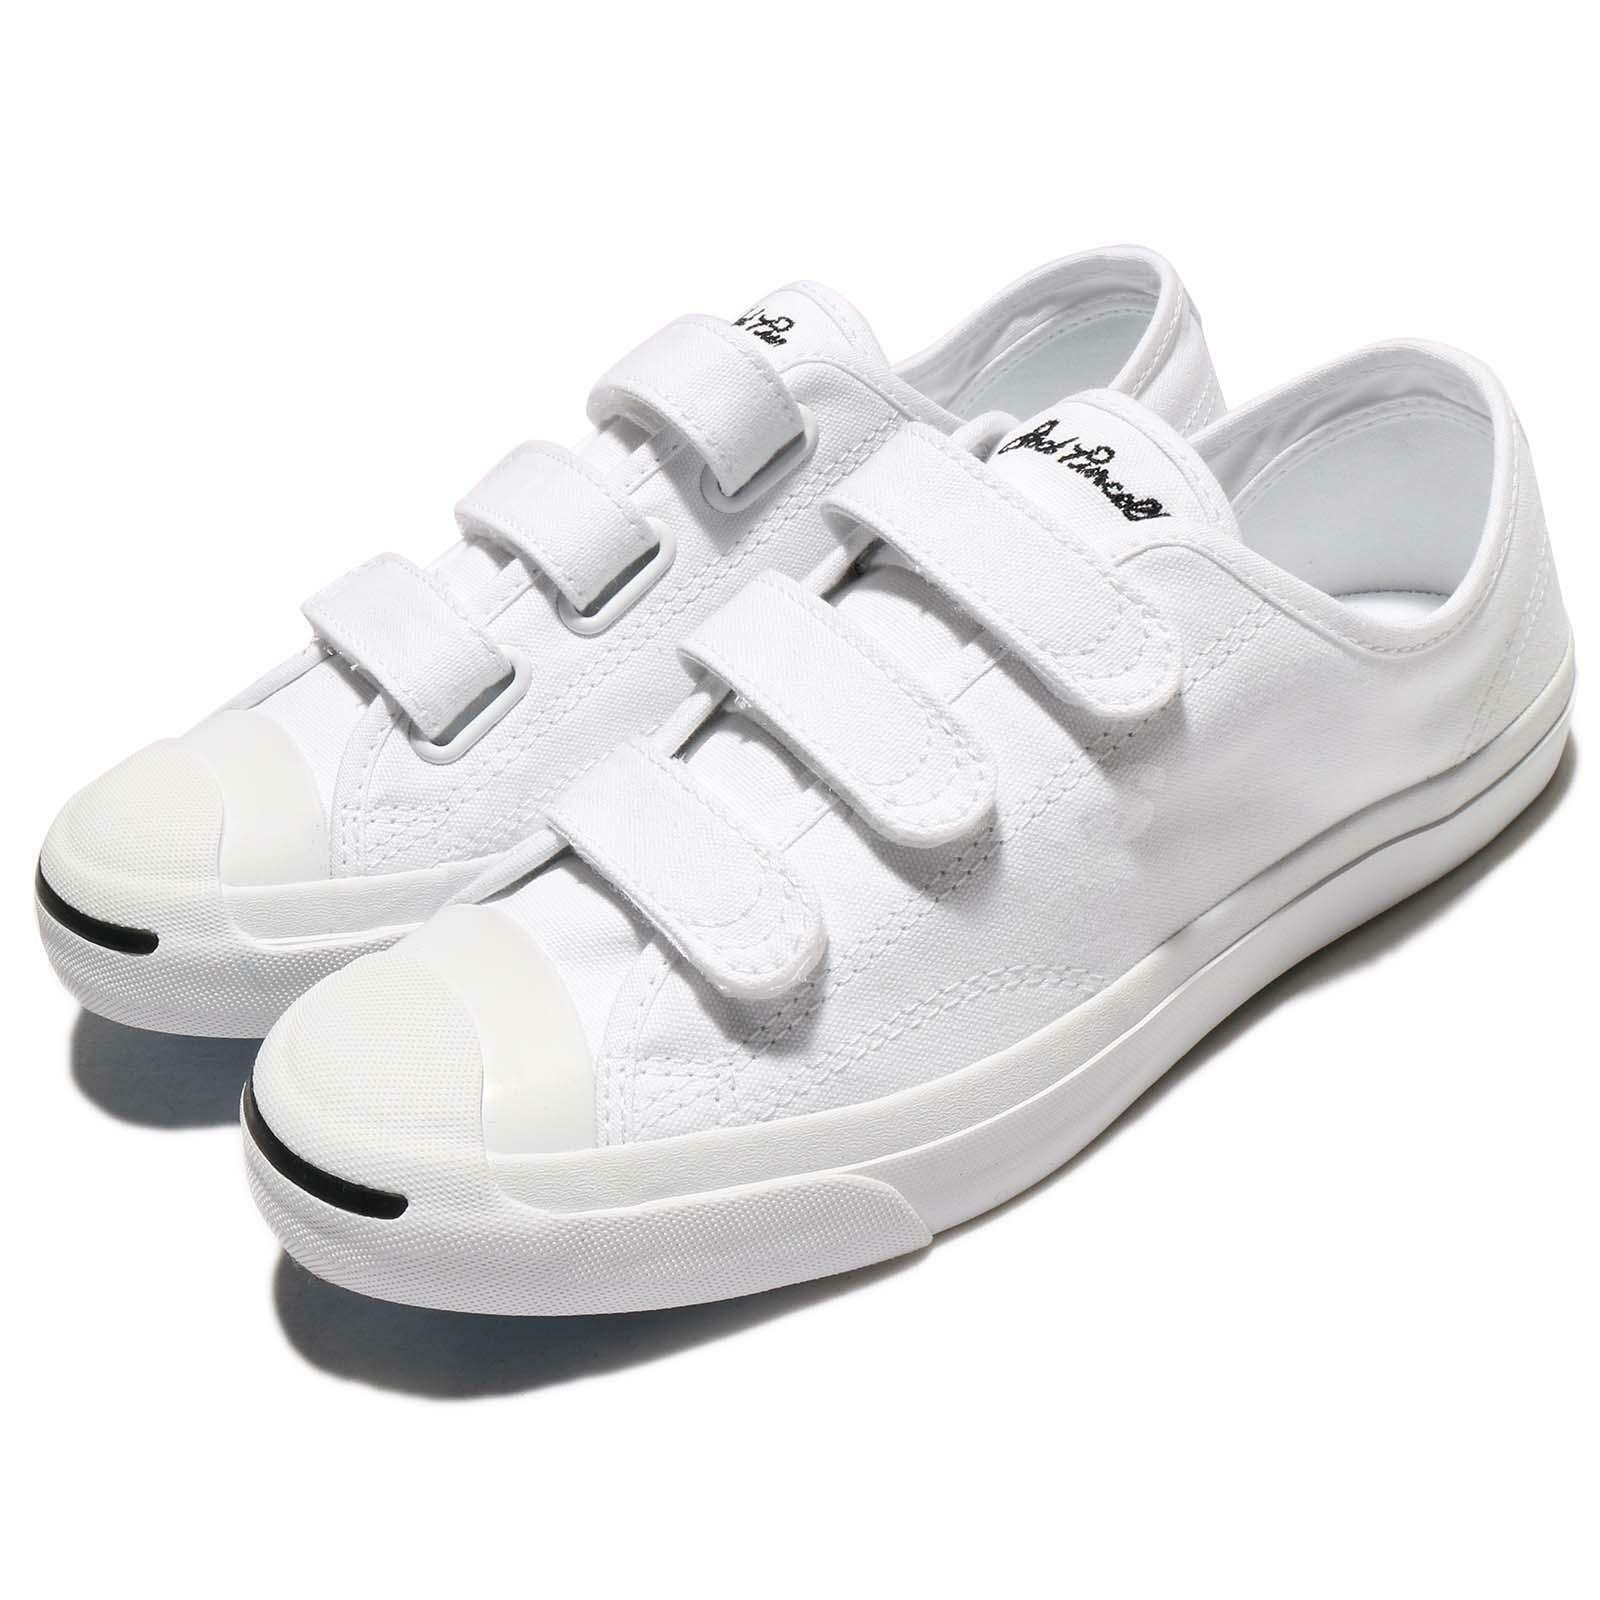 Converse Jack Purcell 3V Canvas White Uomo Donna Shoes  Trainers 160238C